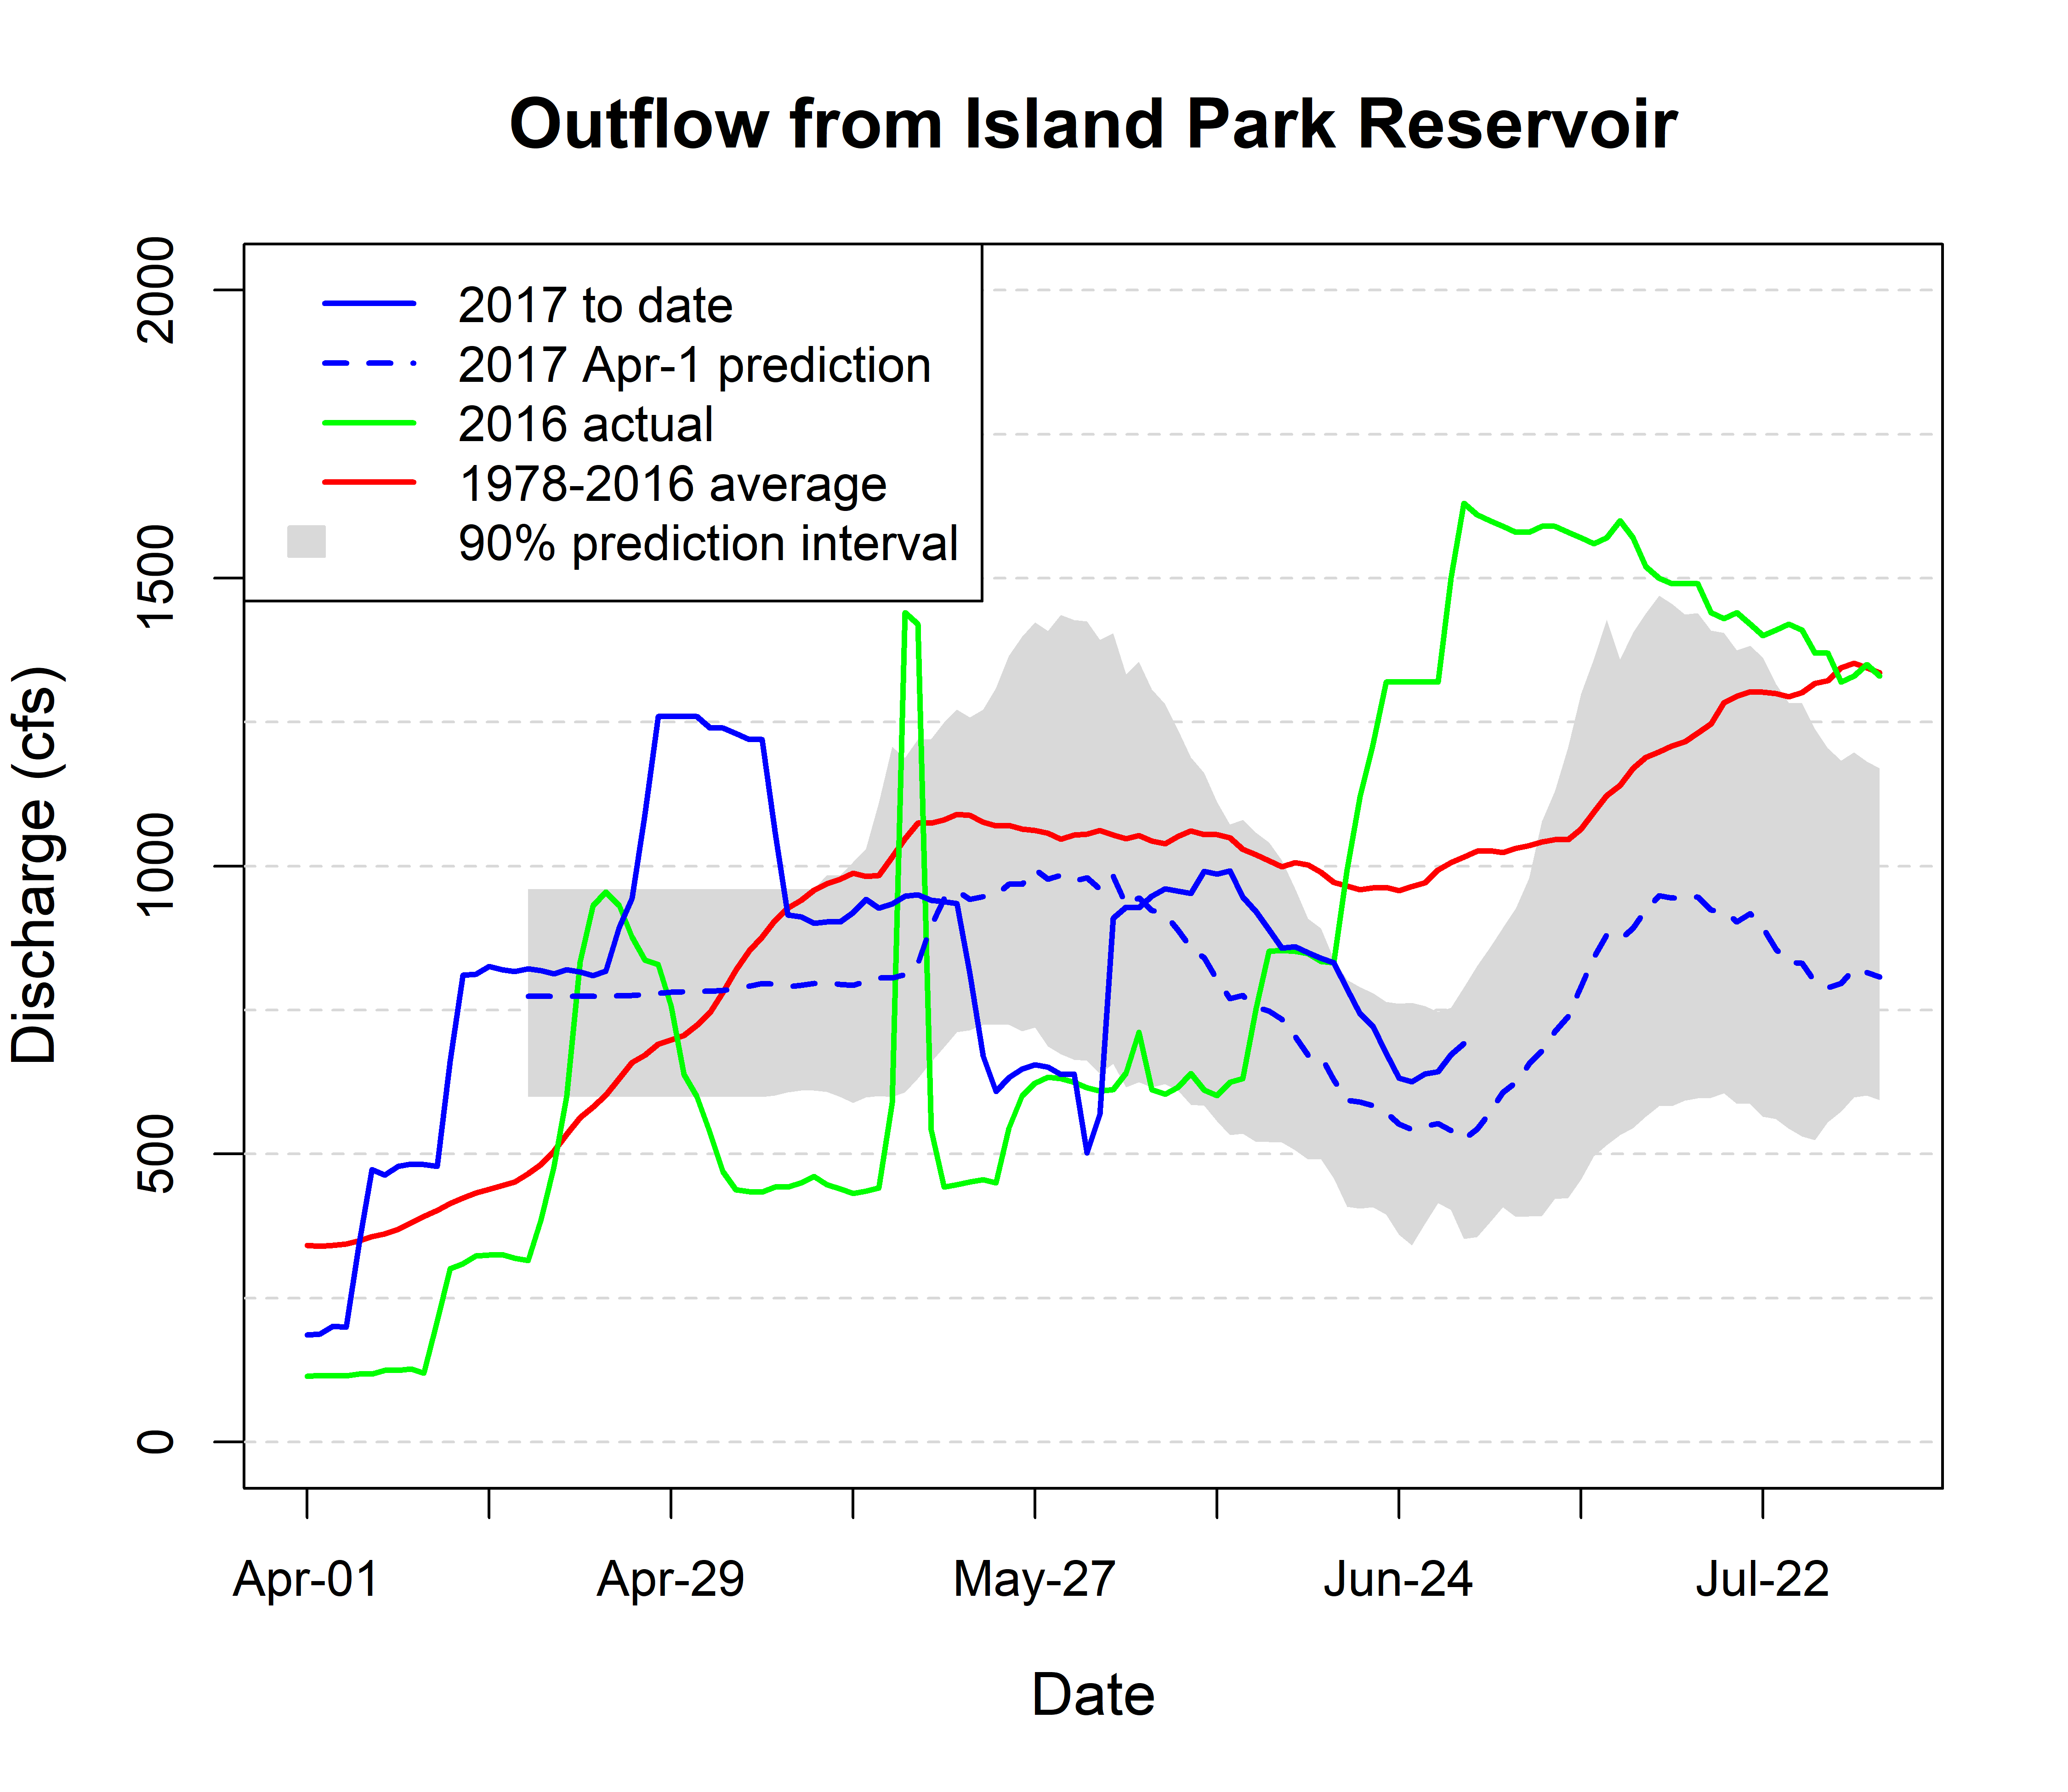 Graph of outflow from IP Reservoir